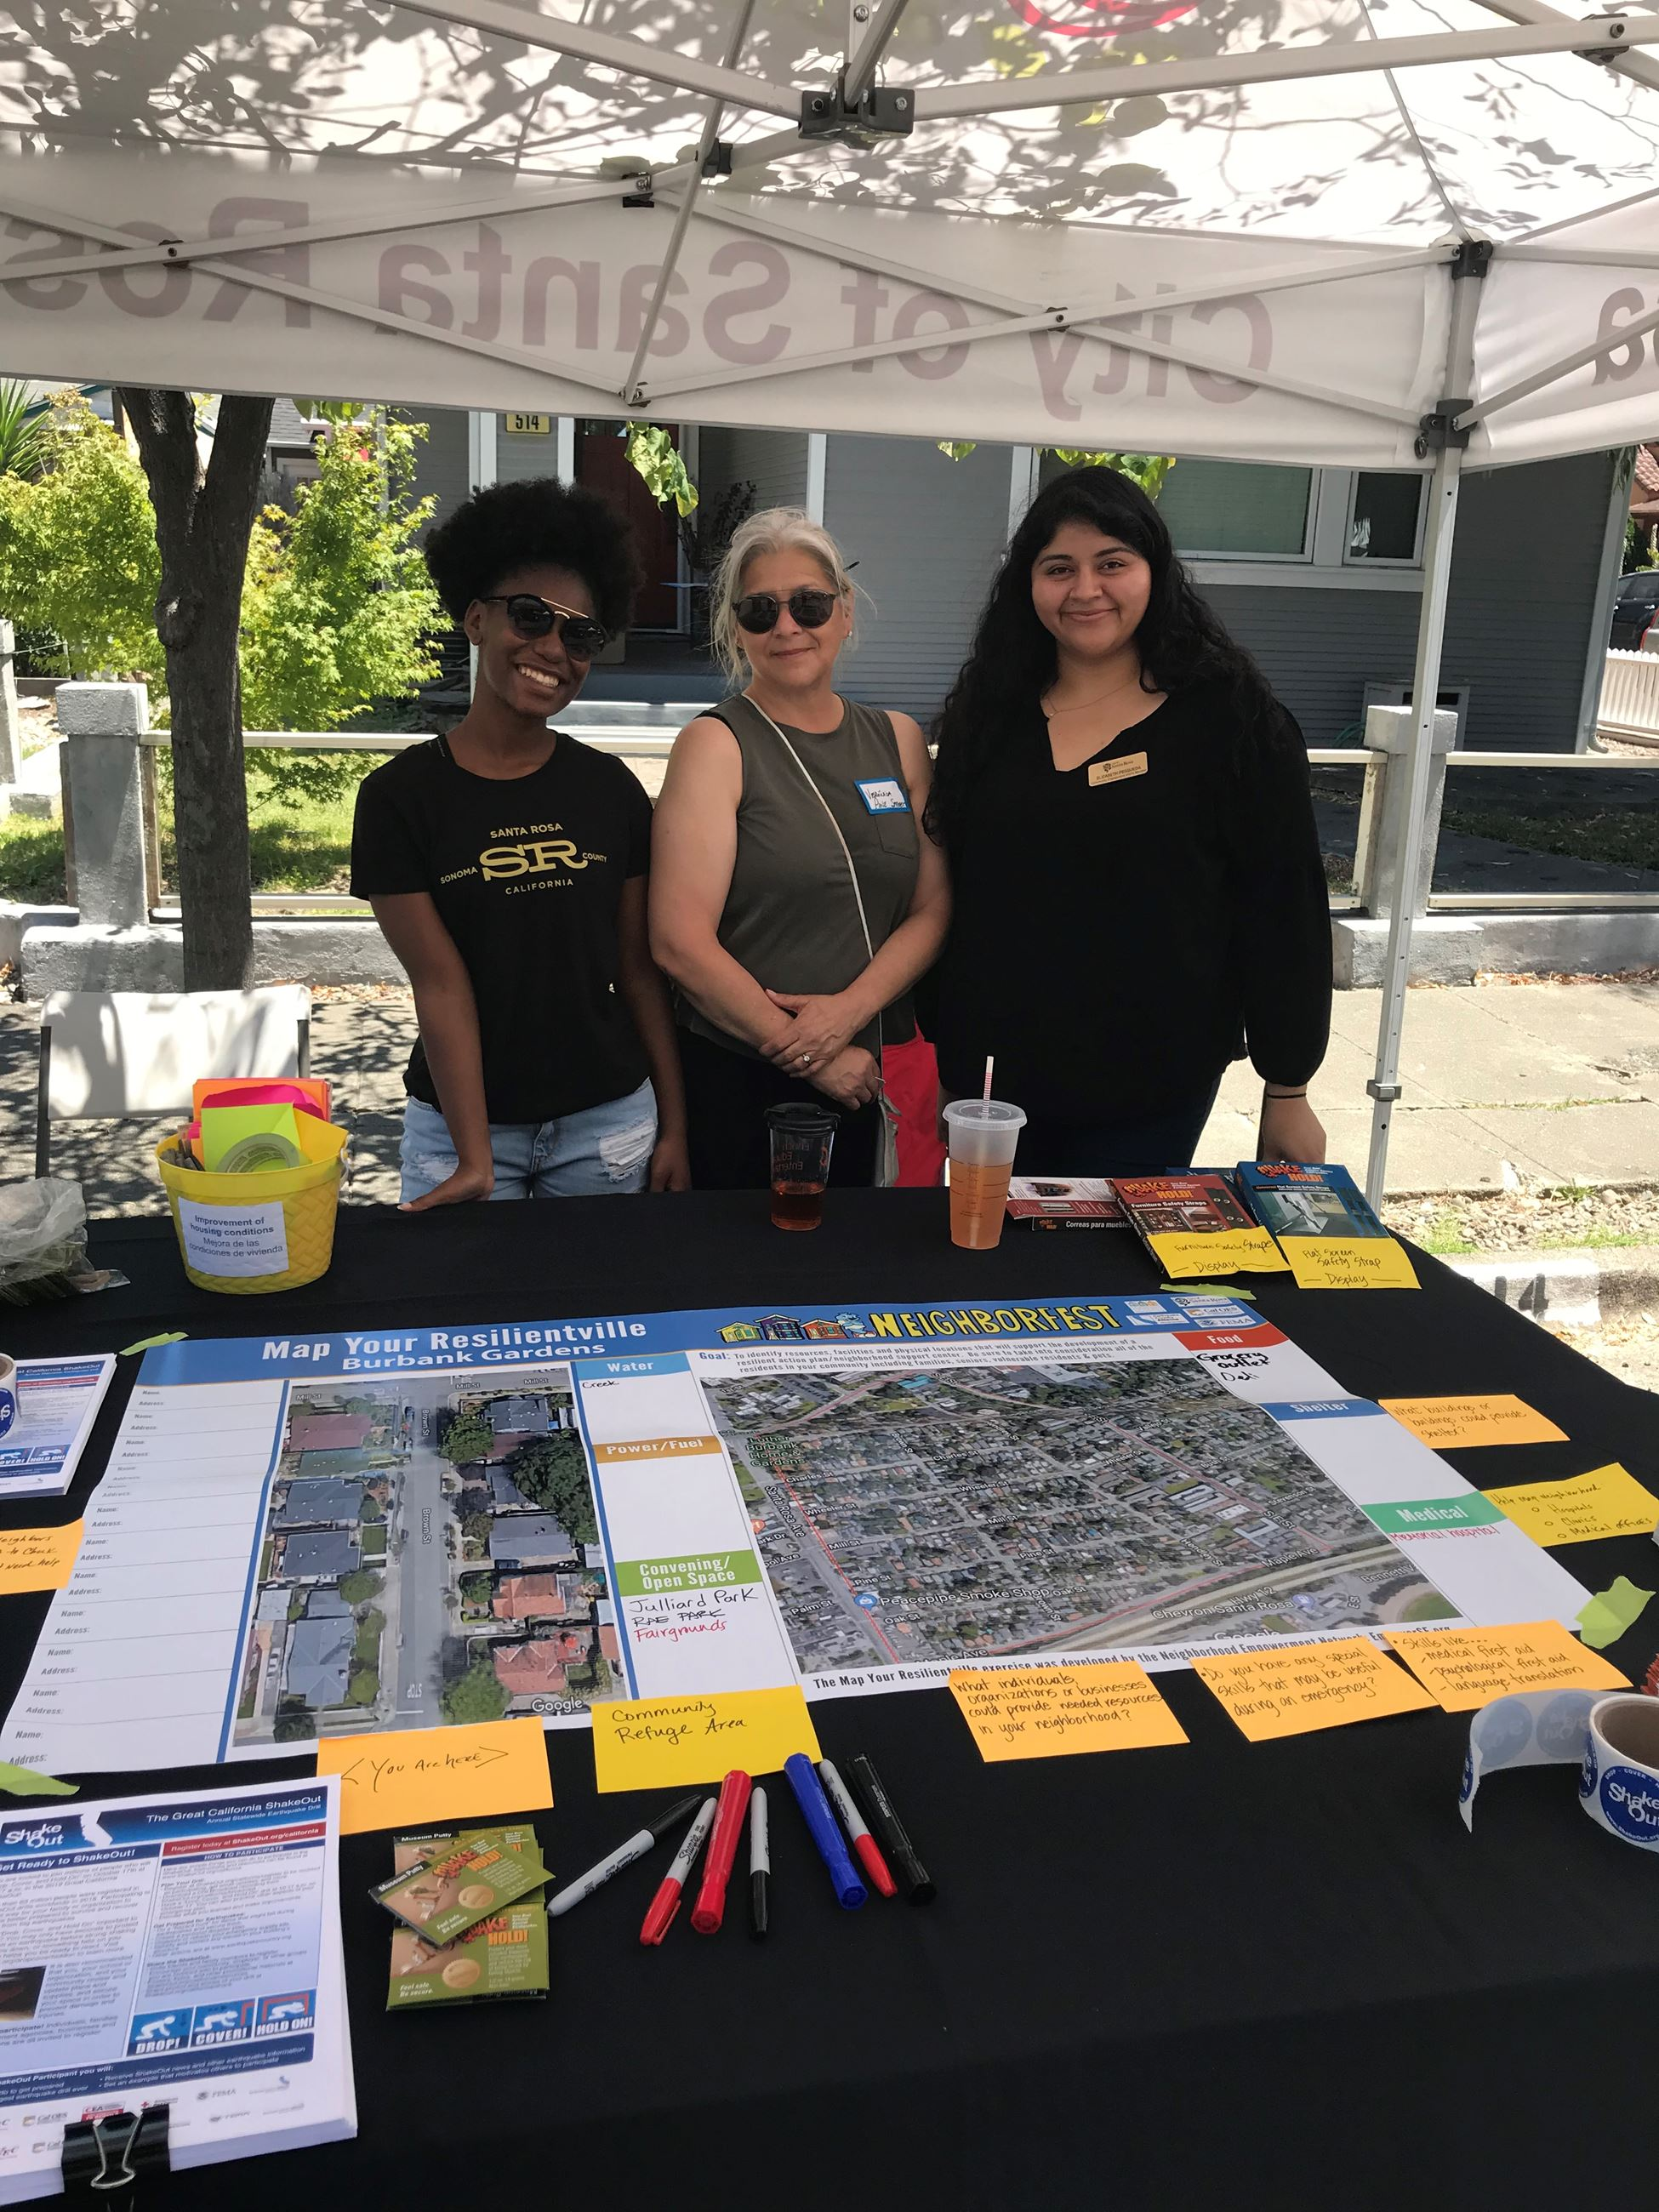 three women standing under a pop up tent next to a neighborhood map on a table